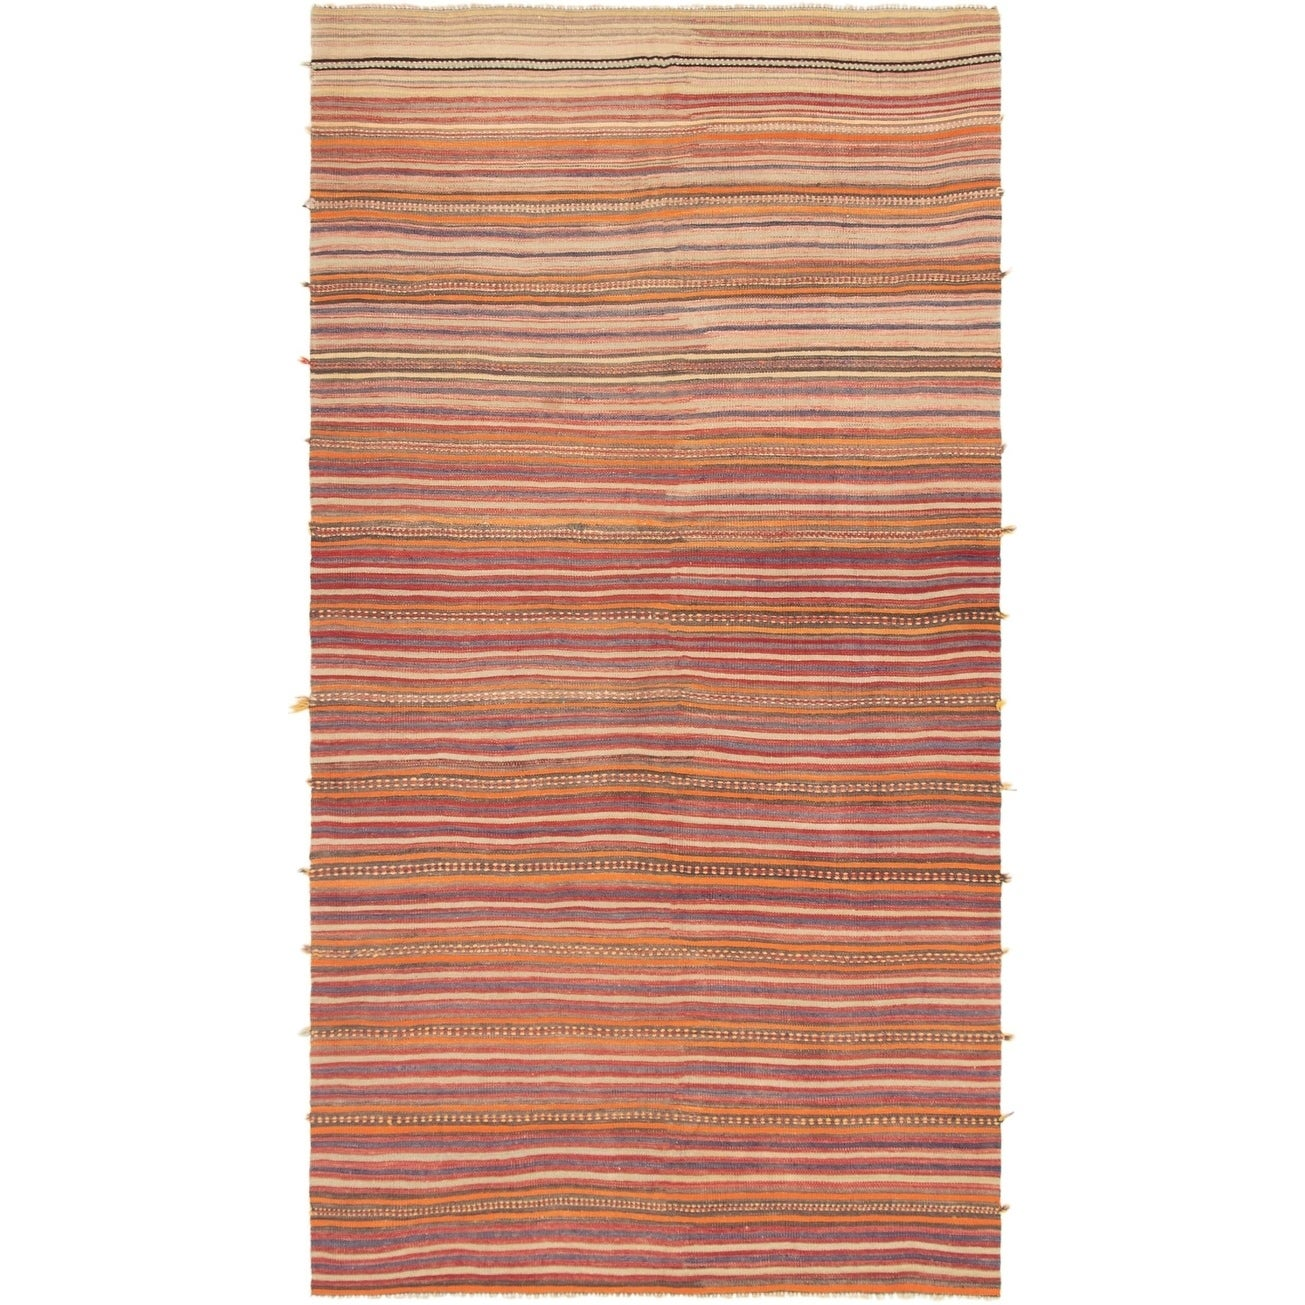 Flat Weave Bohemian Red Wool Kilim 5 7 X 11 3 On Sale Overstock 30637781